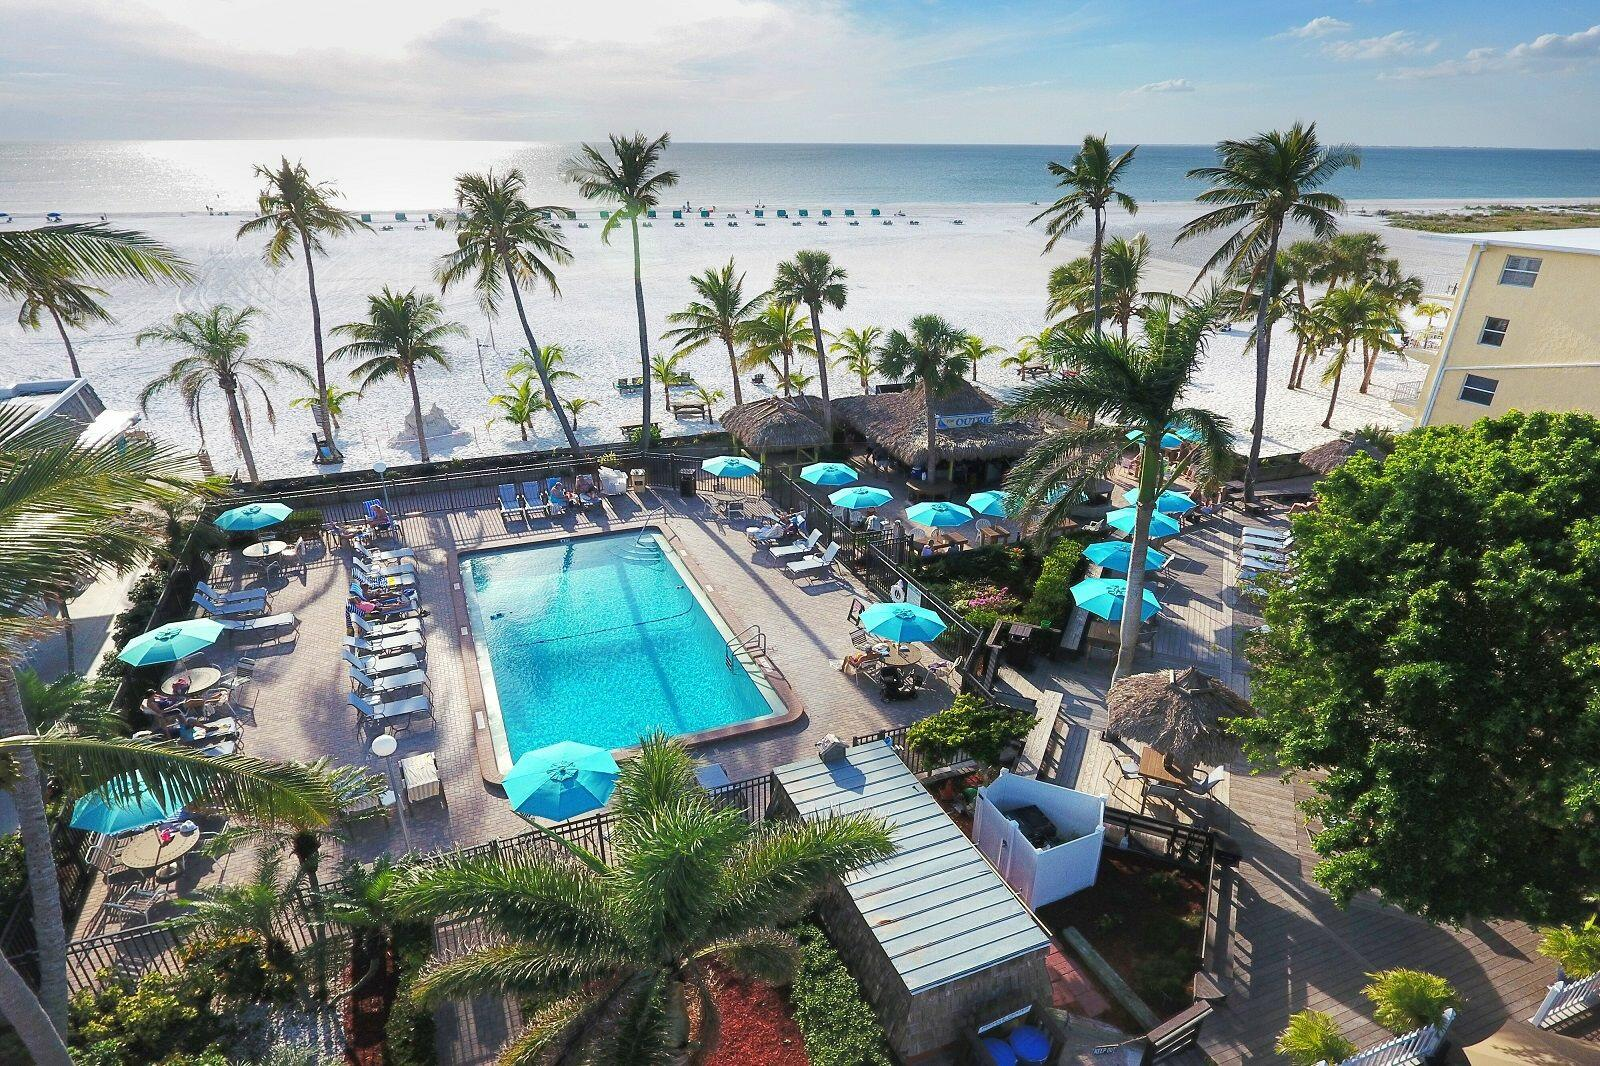 Fort Myers Beach Vacation Packages - Outrigger Beach Resort